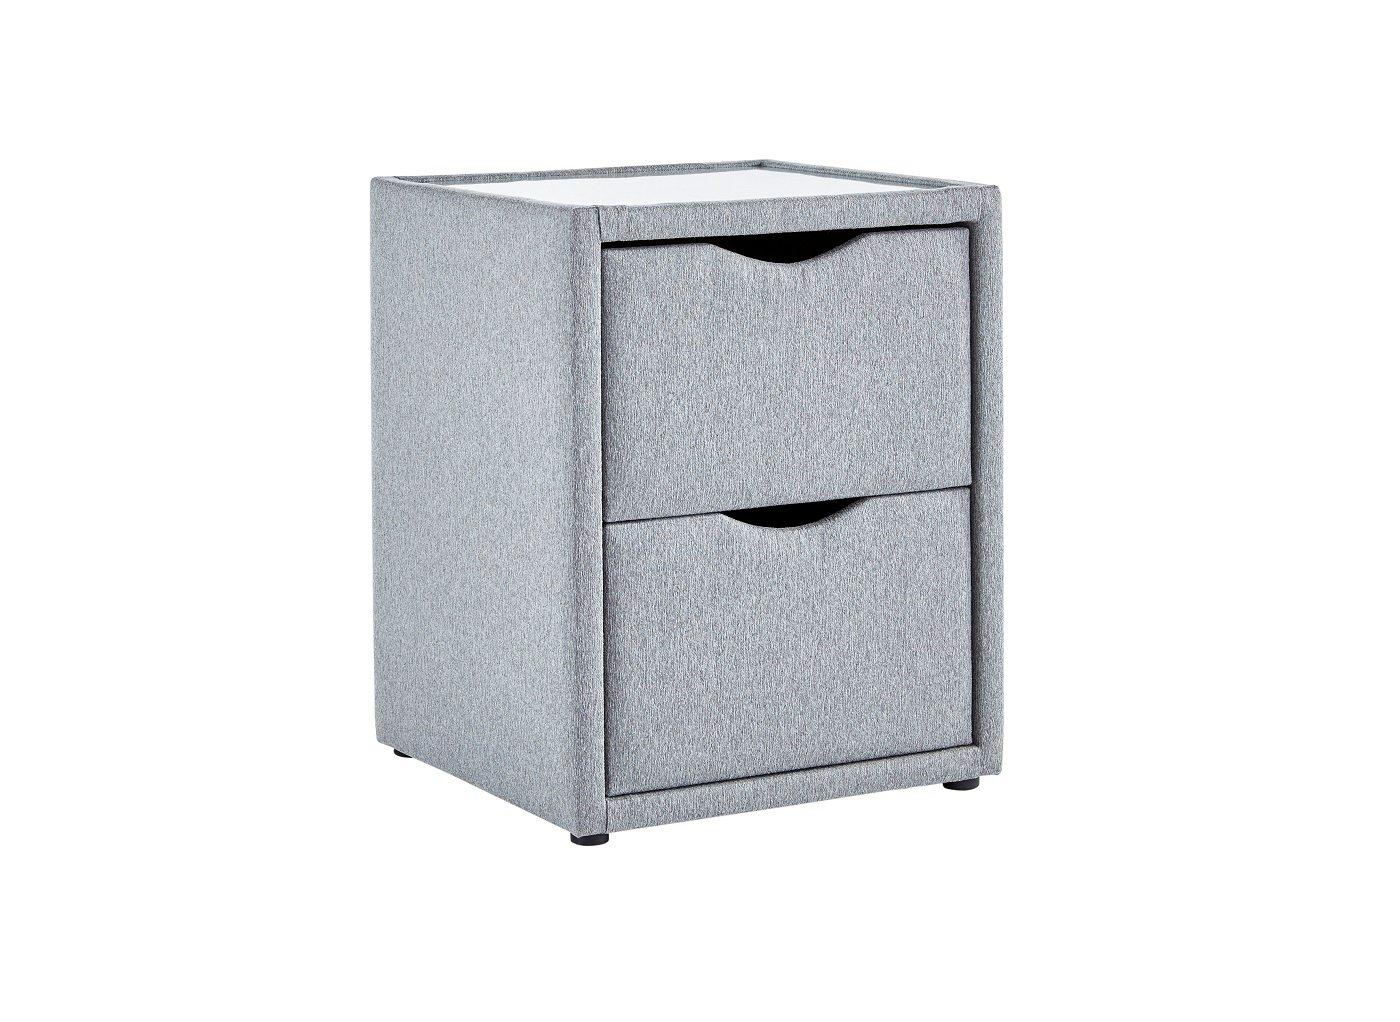 luxury-2-drawer-bedside-table---ash